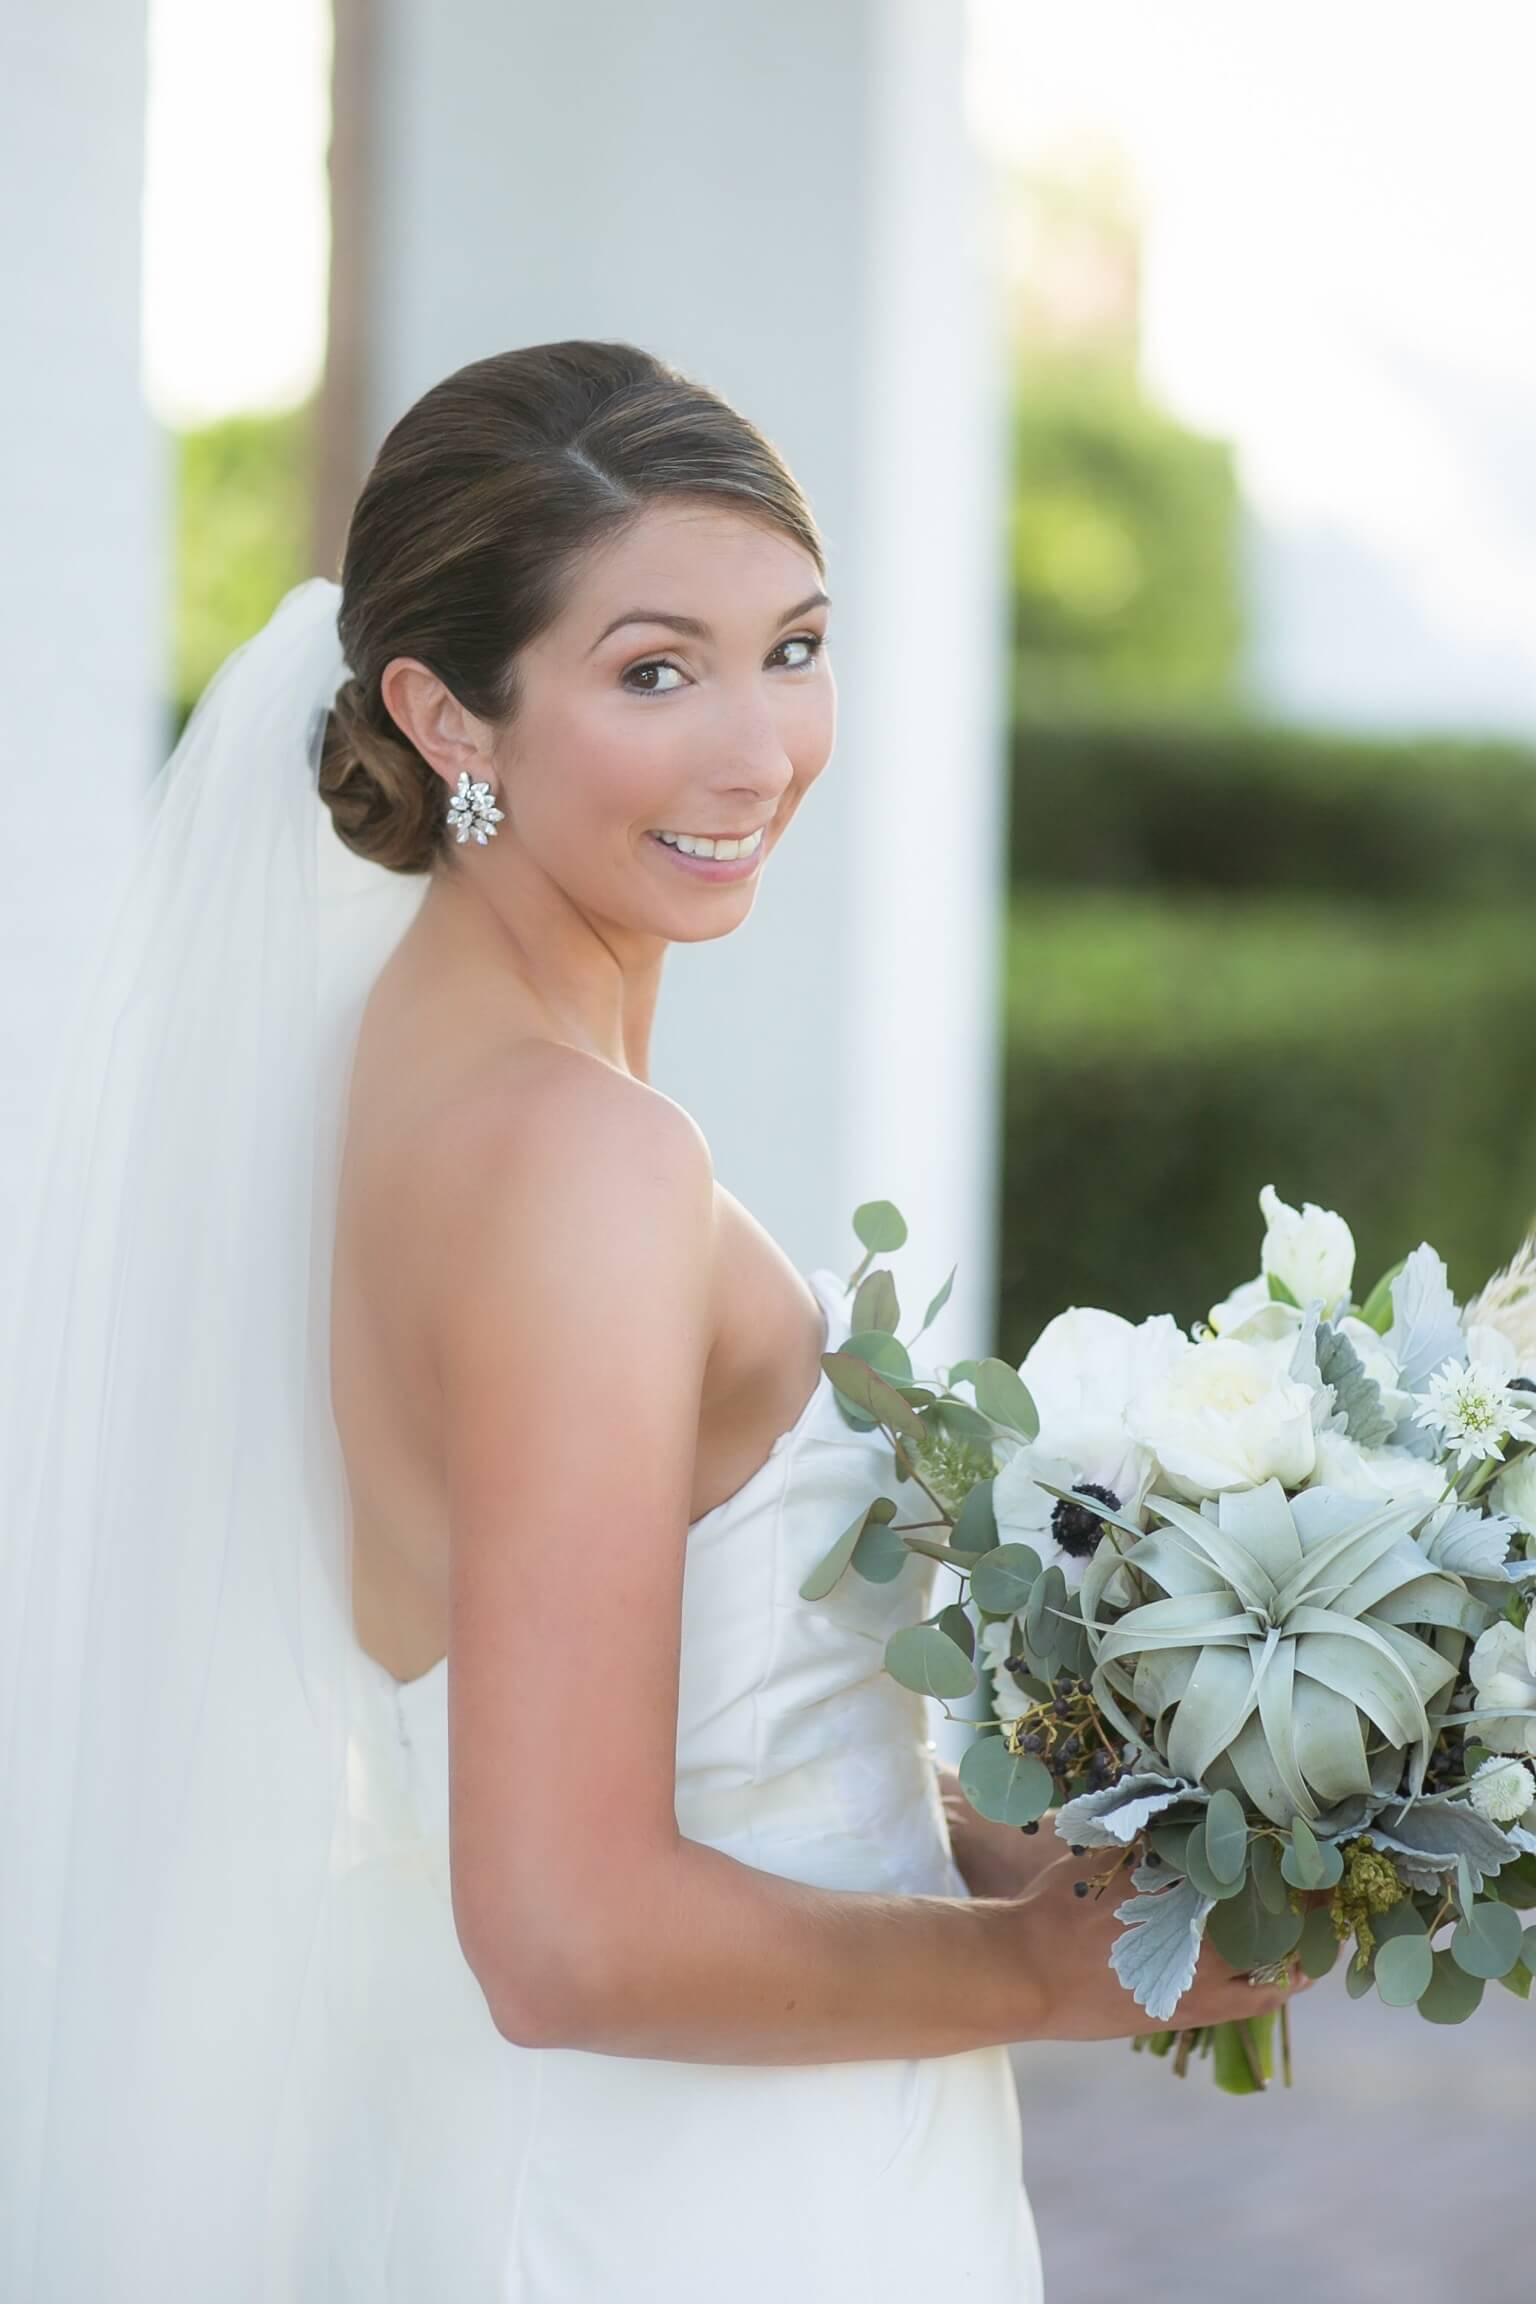 hair-salon-jacksonville-wedding-hairstyles-74